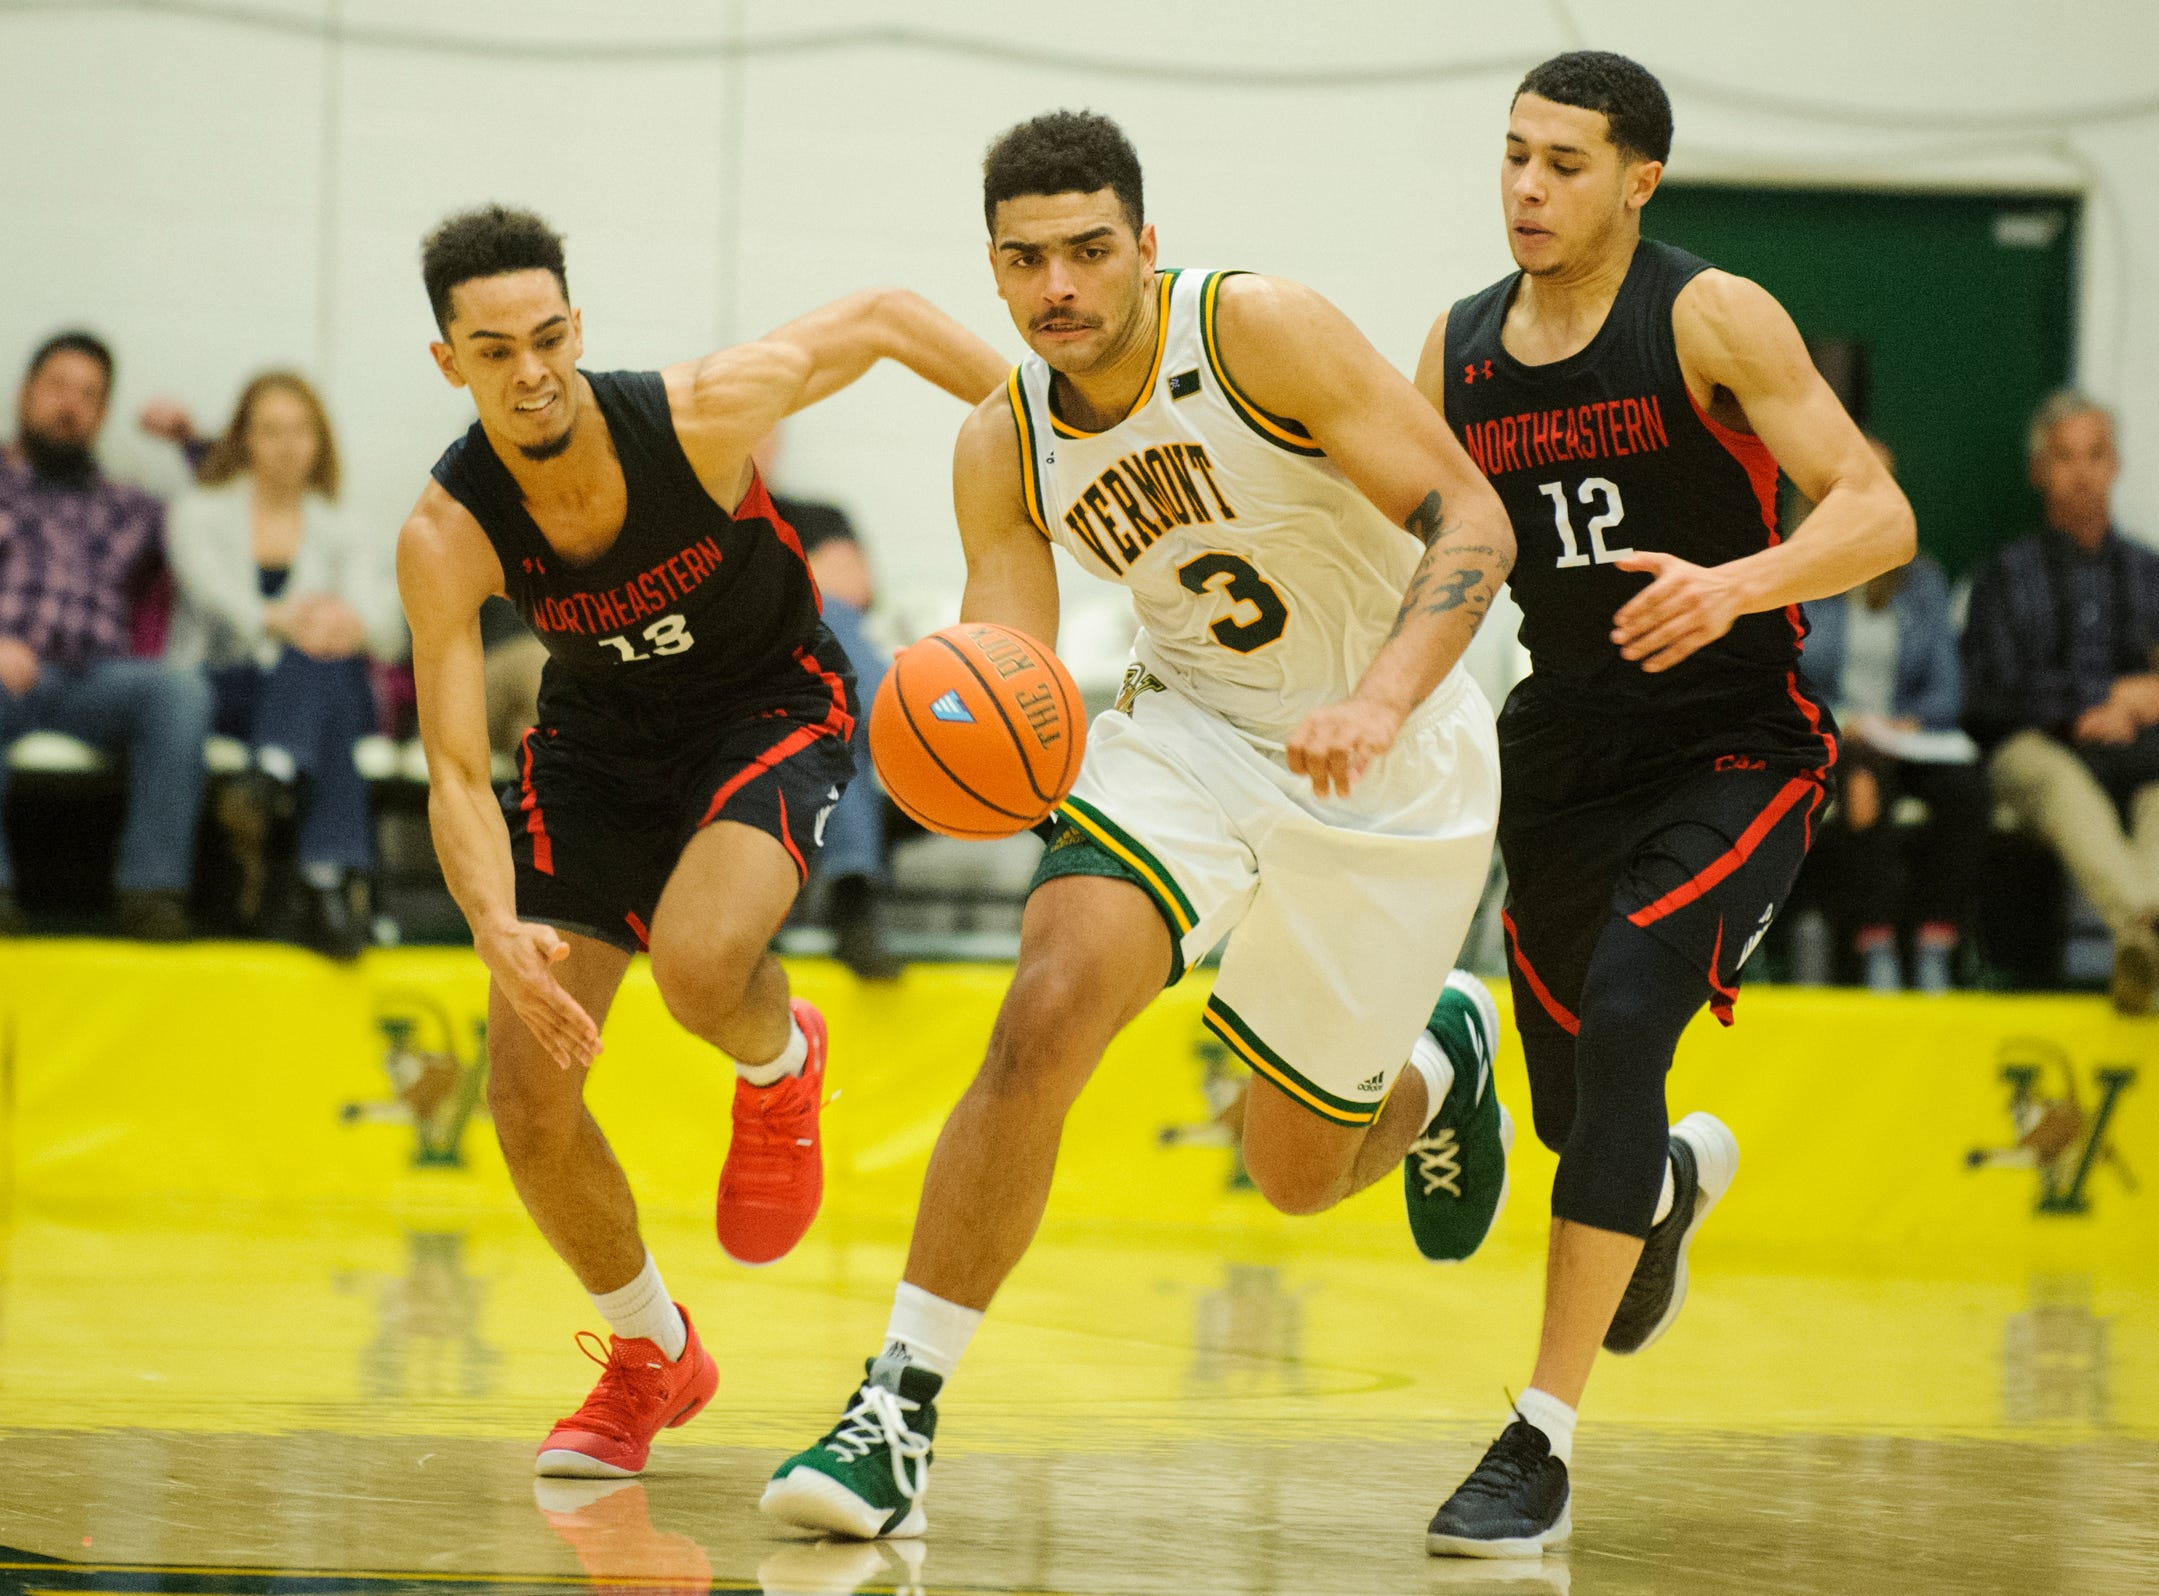 Vermont forward Anthony Lamb (3) runs down the court with the ball past Northeastern's Jordan Roland (12) and Myles Franklin (13) during the men's basketball game between the Northeastern Huskies and the Vermont Catamounts at Patrick Gym on Sunday afternoon December 16, 2018 in Burlington.